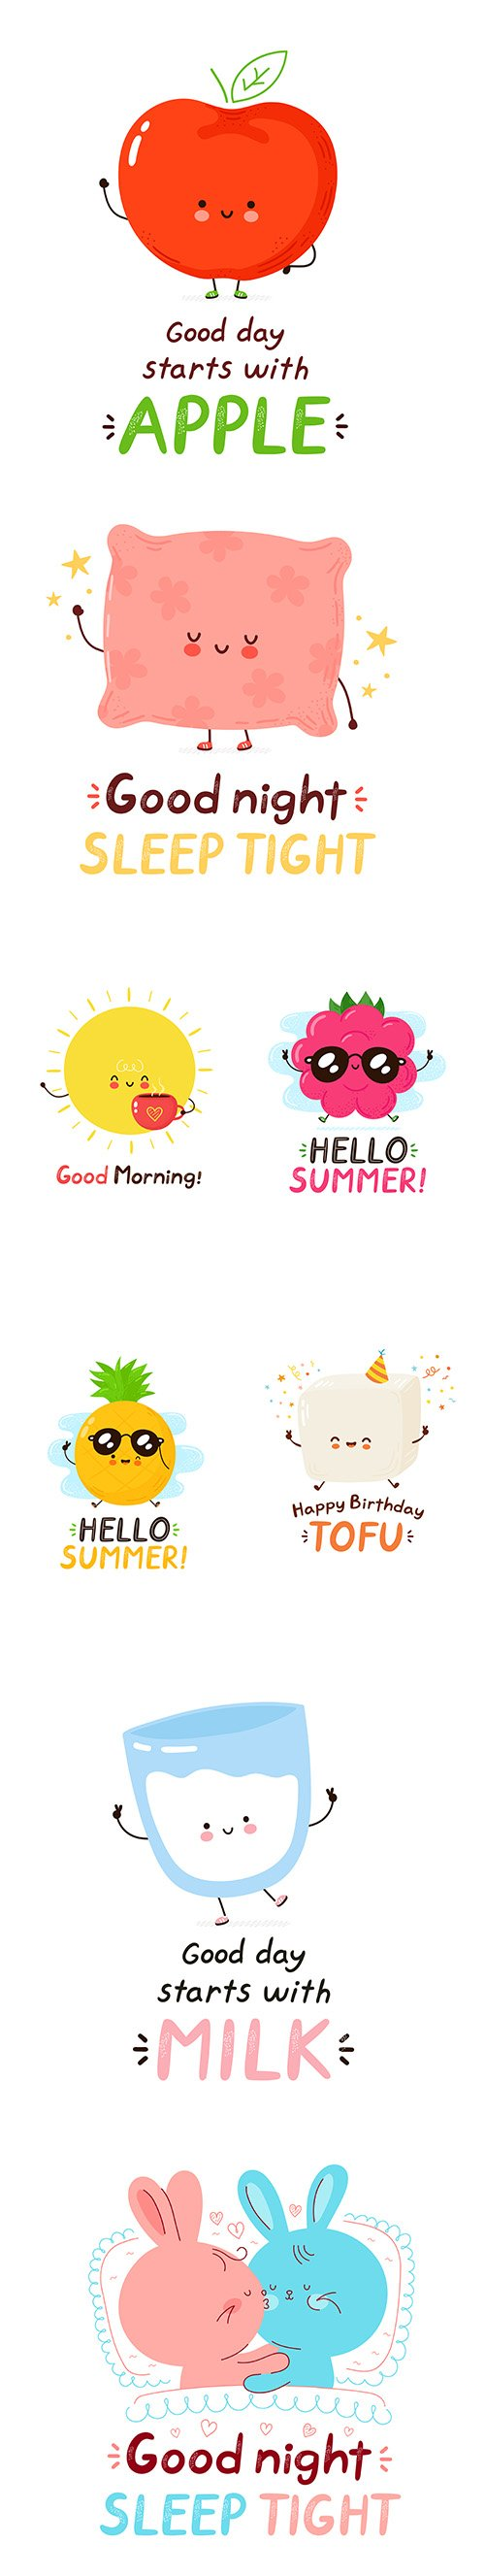 Cute Happy Card Cartoon Character Illustrations